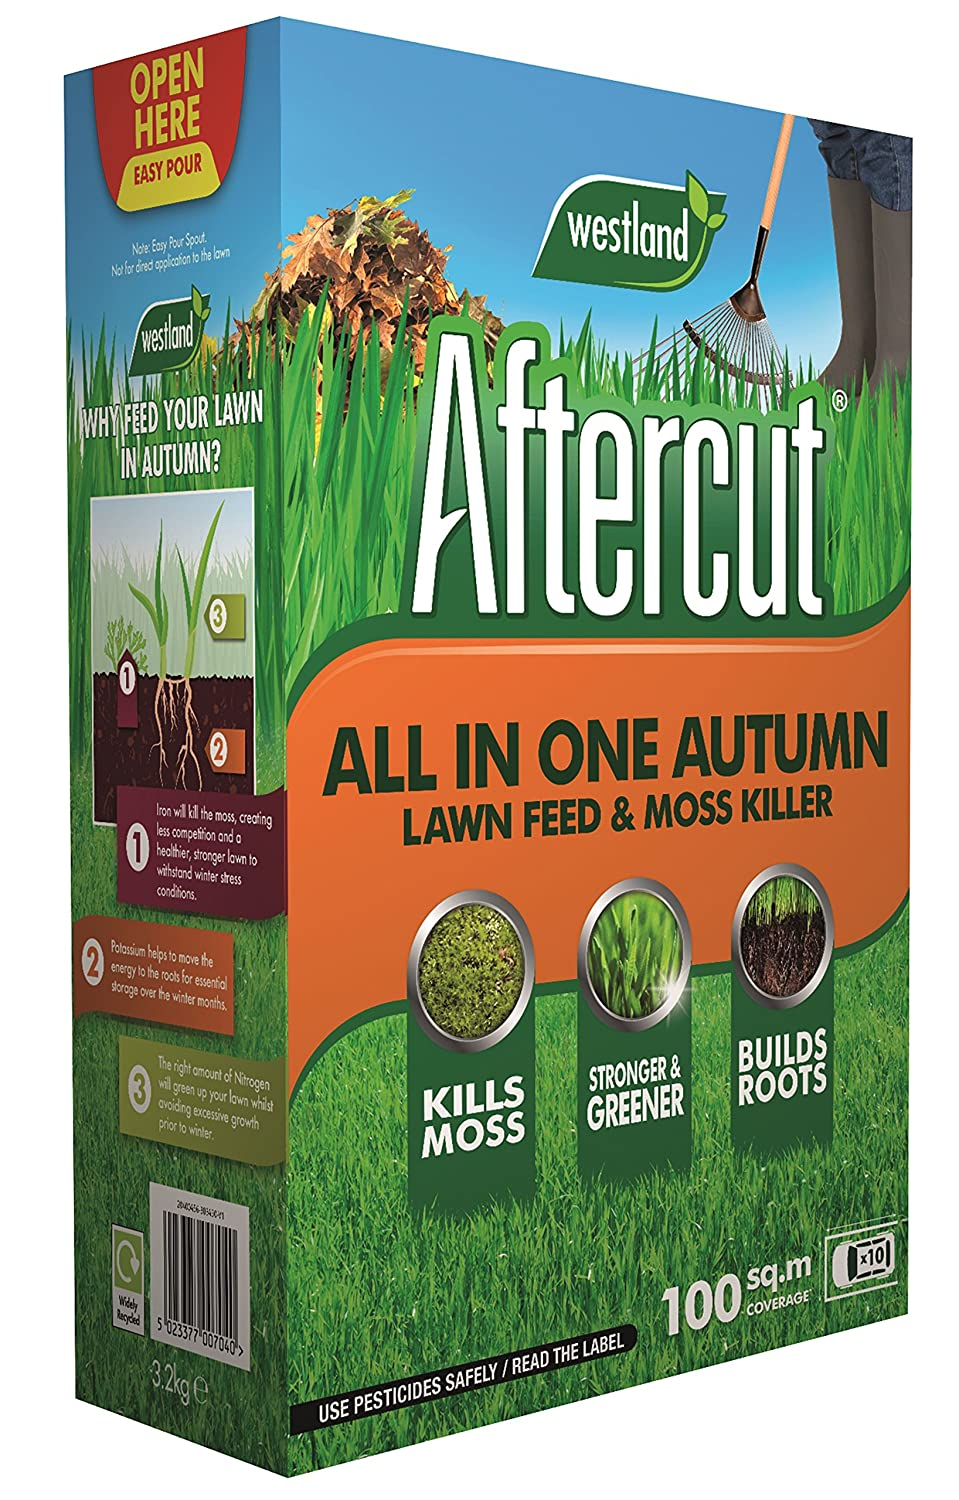 Aftercut All In One Autumn Lawn Care (Lawn Feed and Moss killer), 100 m2, 3.5 Kg Westland Horticulture 20400456